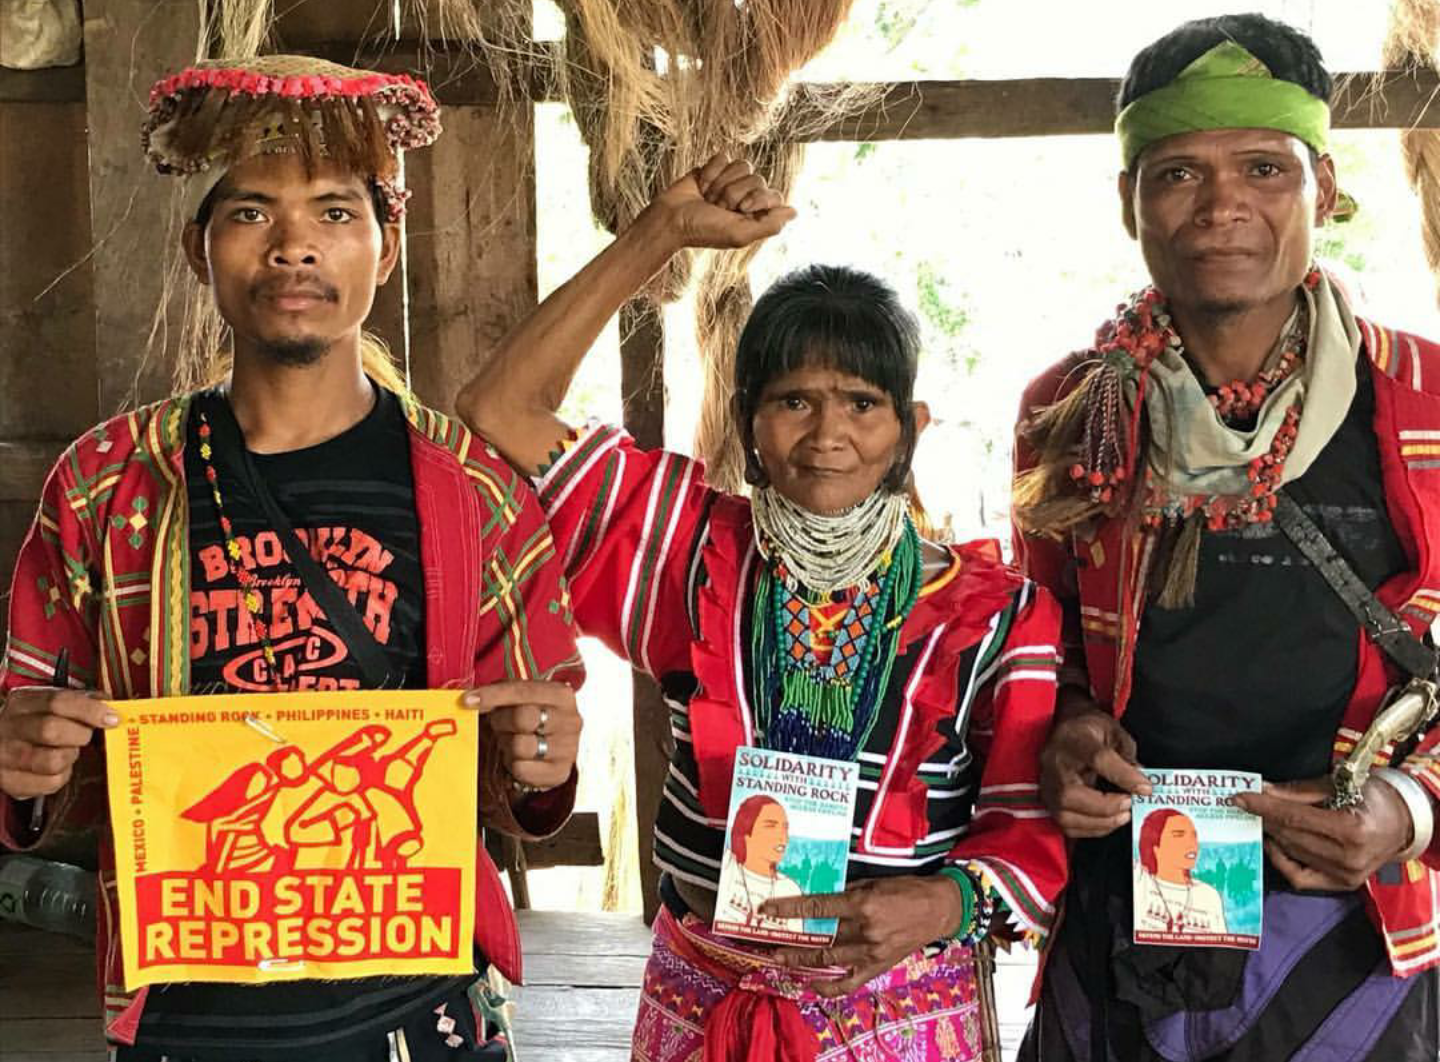 Salupongan Ta Tanu Igkanugon (Unity in Defense of Ancestral Land) Indigenous leaders stand in solidarity with the Indigenous leaders and supporters facing state repression in Standing Rock, Mexico, Palestine, Haiti, and all over the world / Photo courtesy of  Salupongan International , 2017